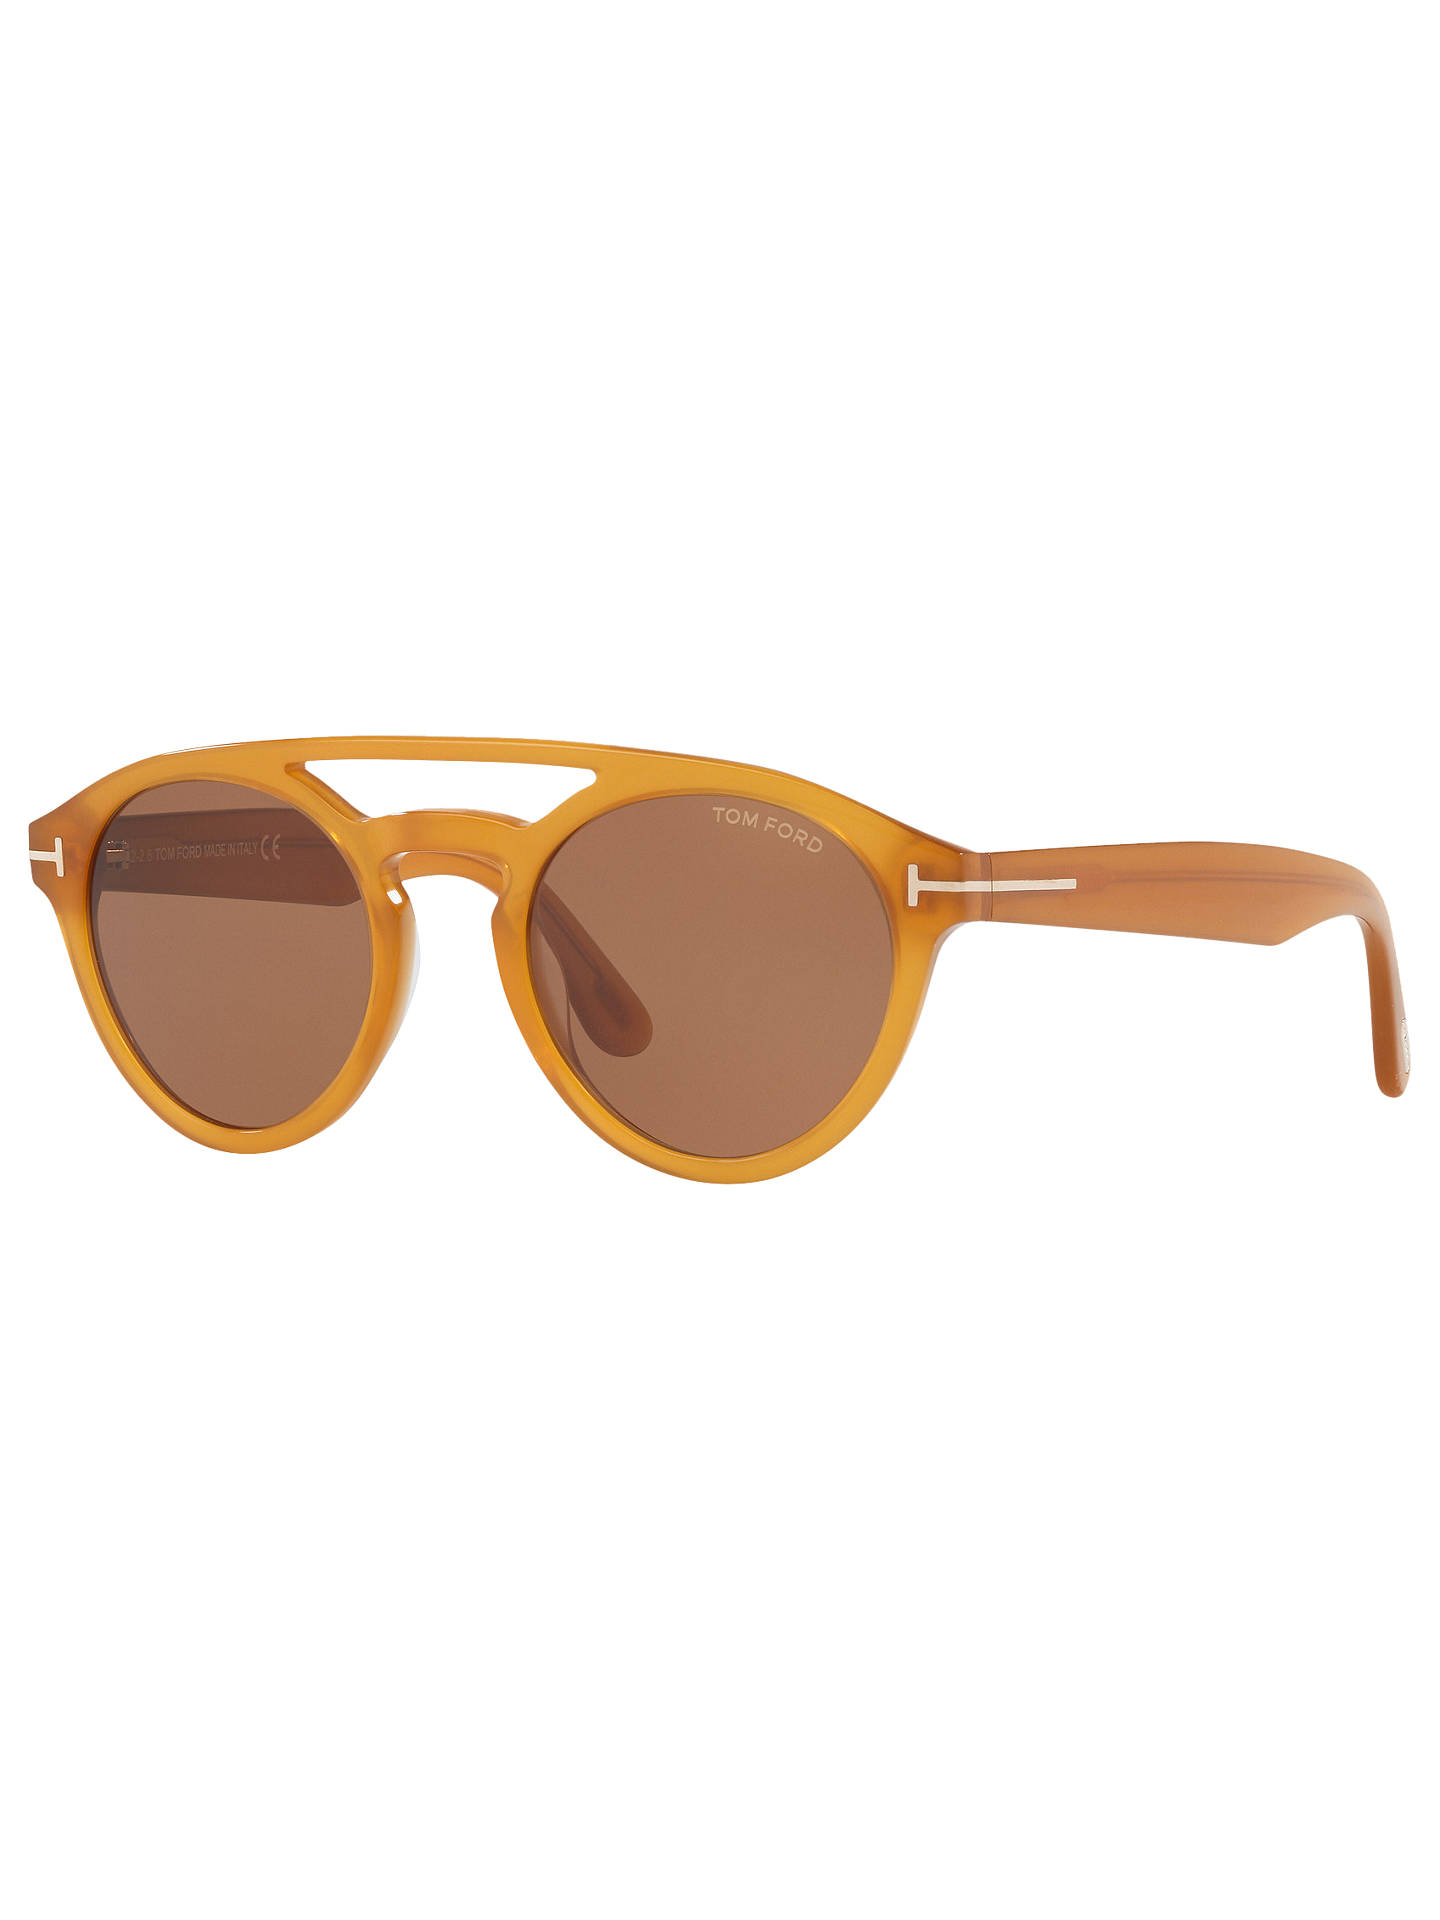 980370679993 Buy TOM FORD TF537 Clint Round Sunglasses